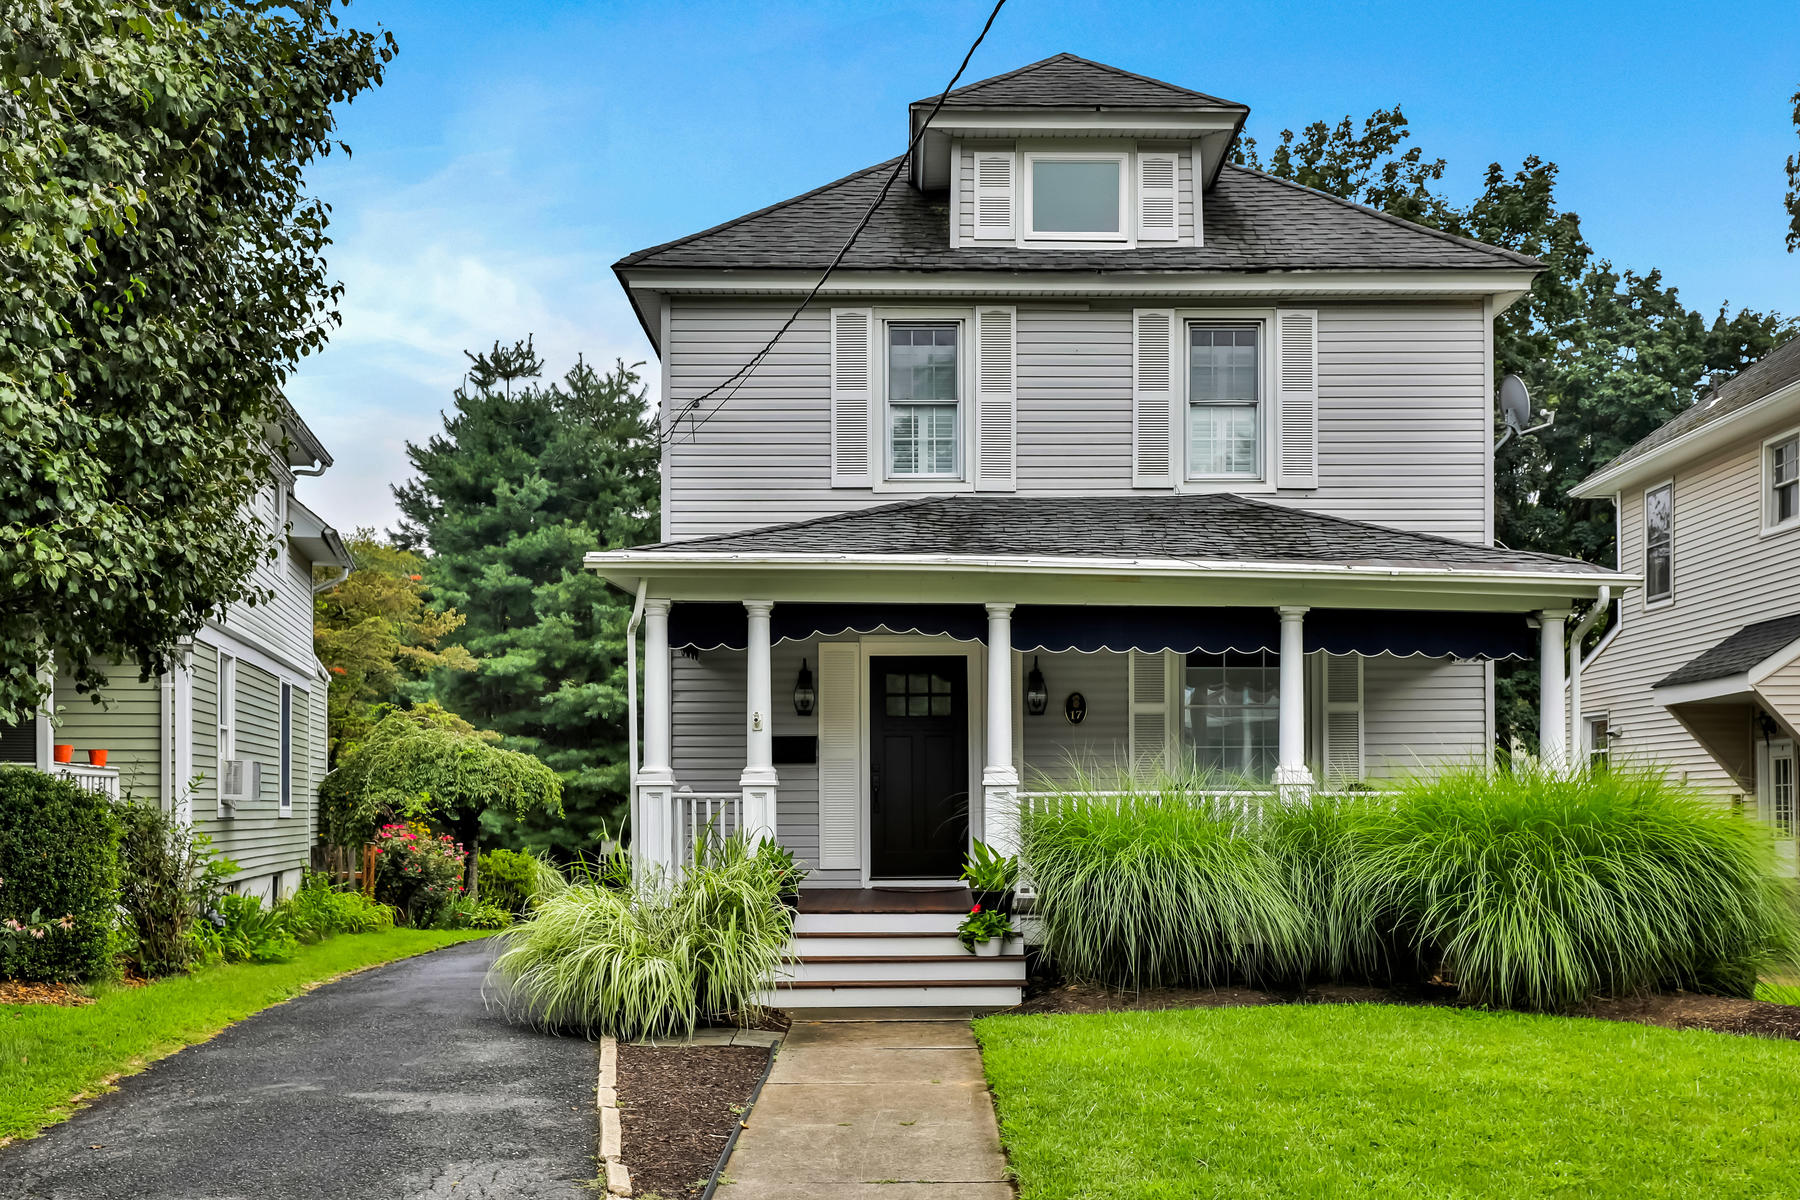 Single Family Homes for Sale at Red Bank Classic 17 Brown Pl Red Bank, New Jersey 07701 United States